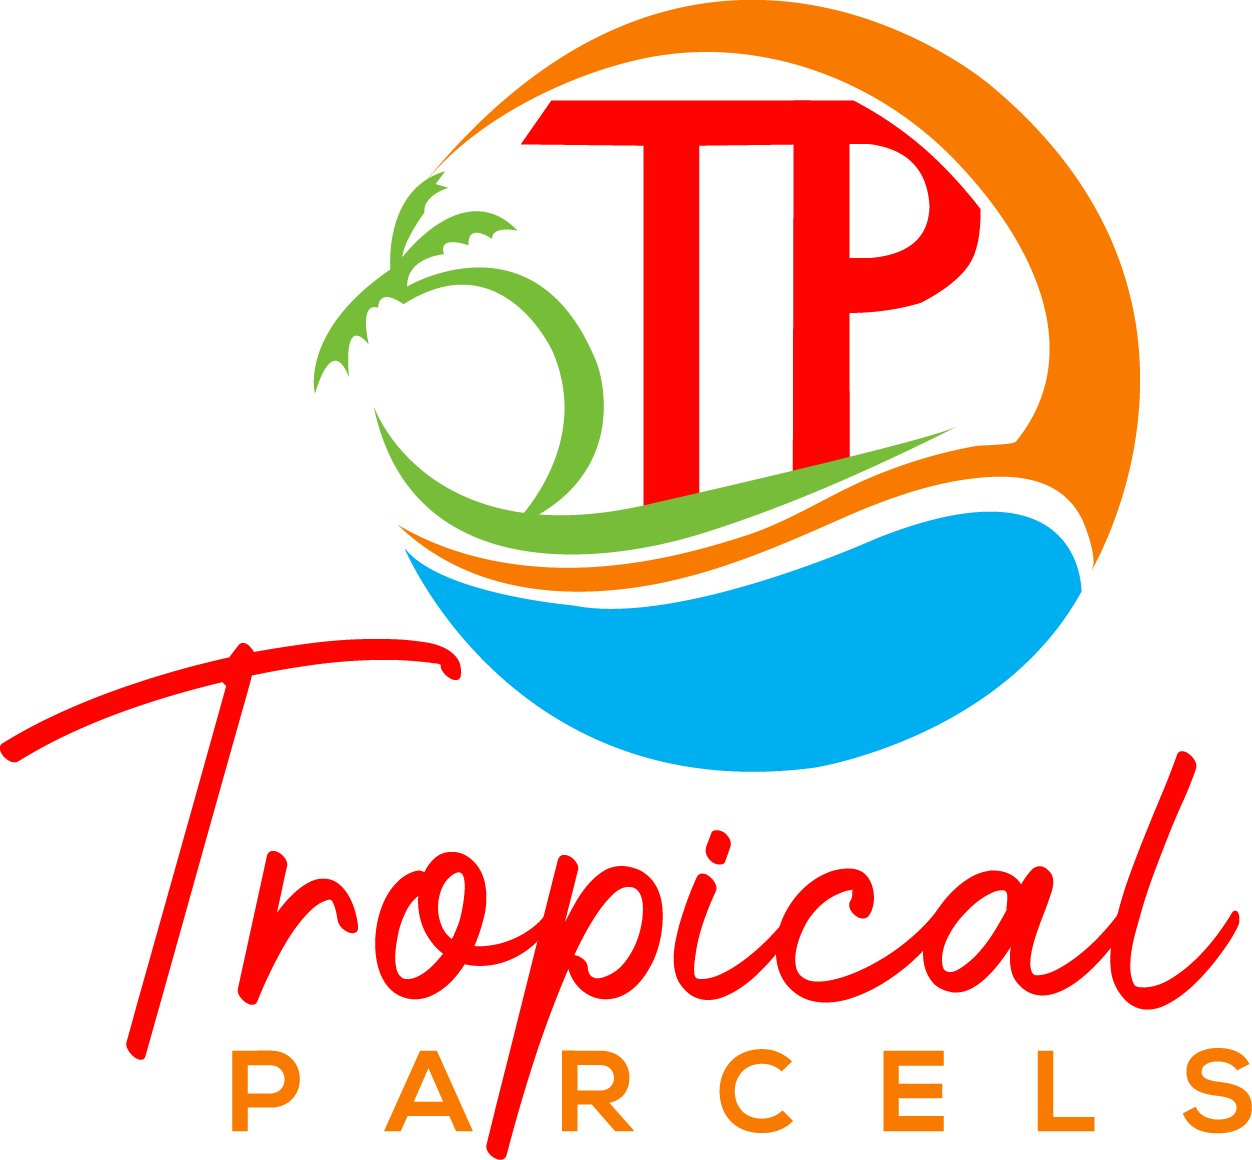 Tropical Parcels